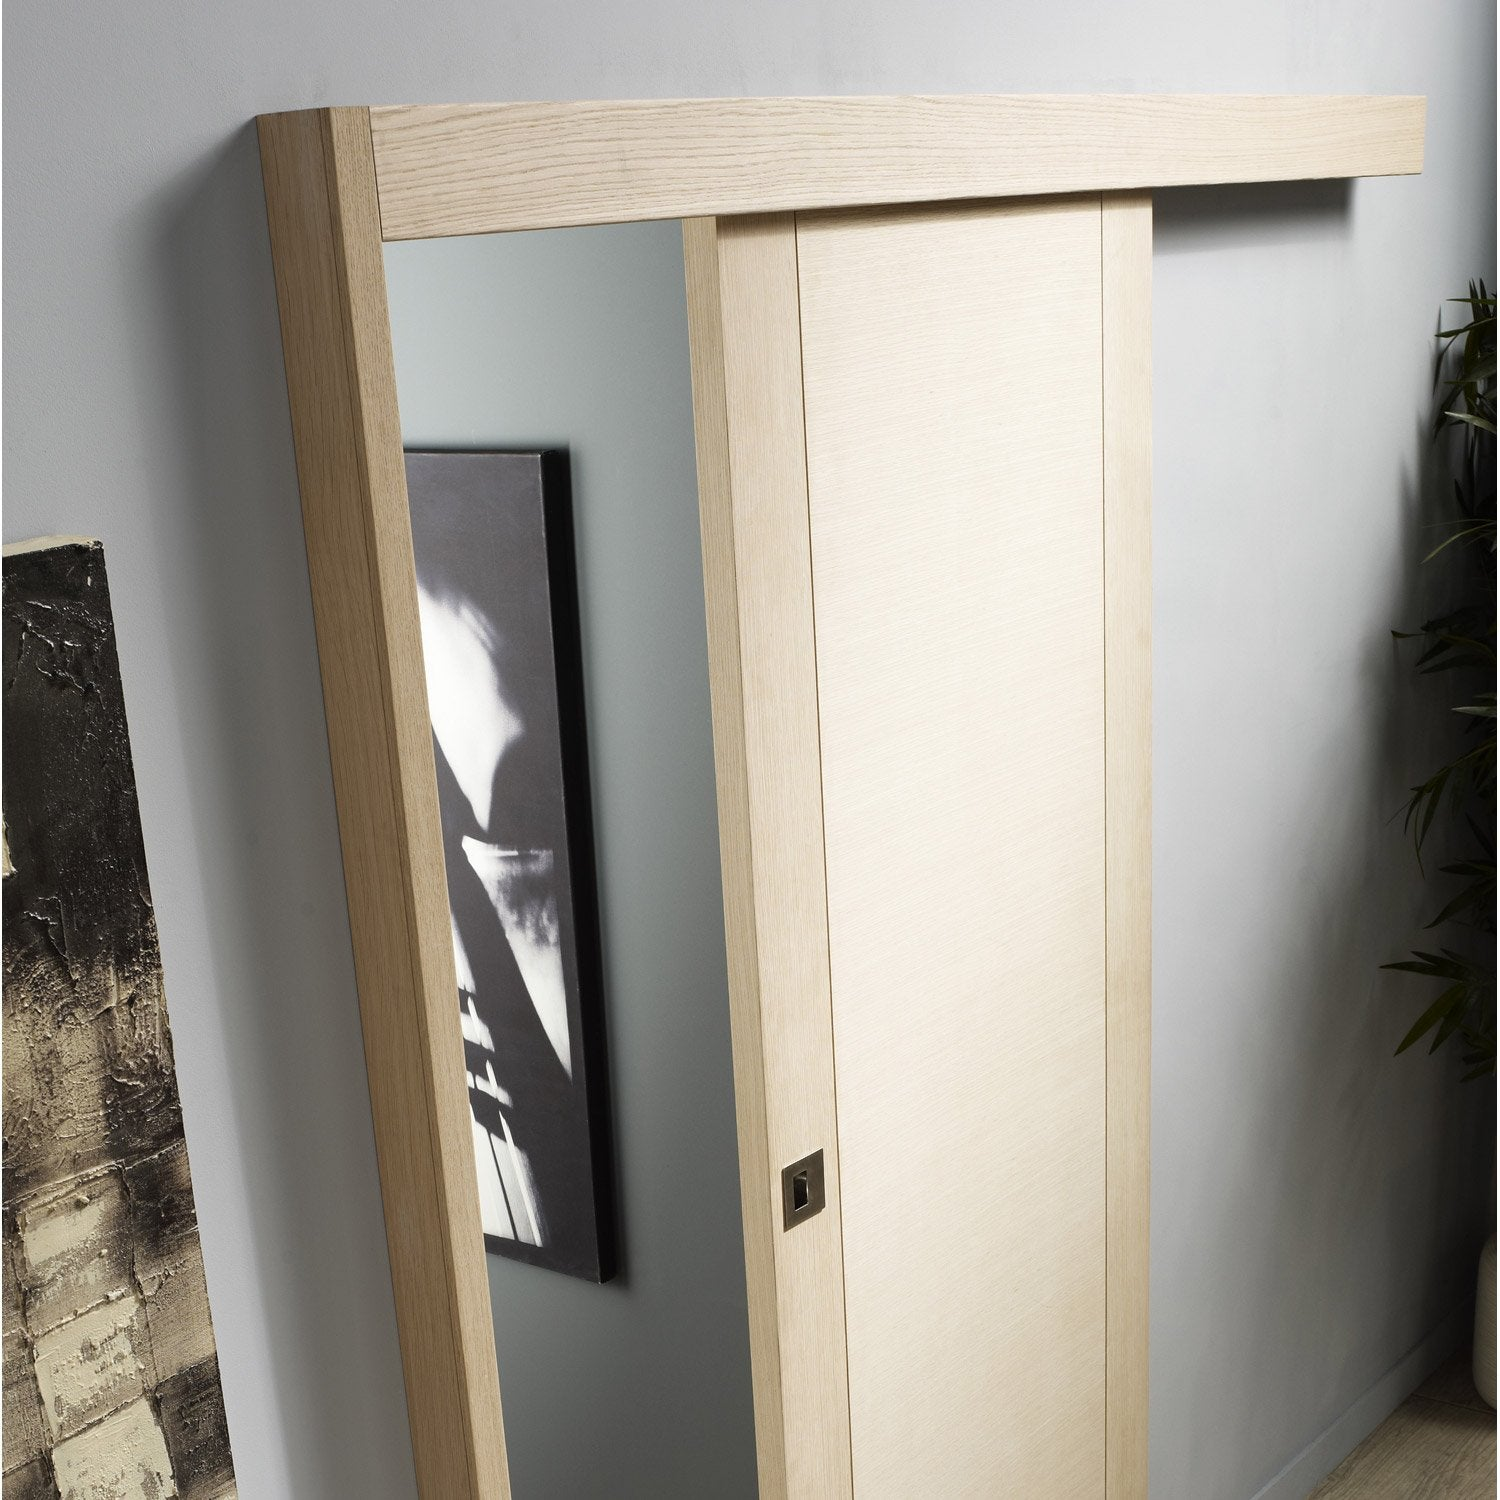 jazz artens, pour porte de largeur 93 cm maximum  leroy merlin